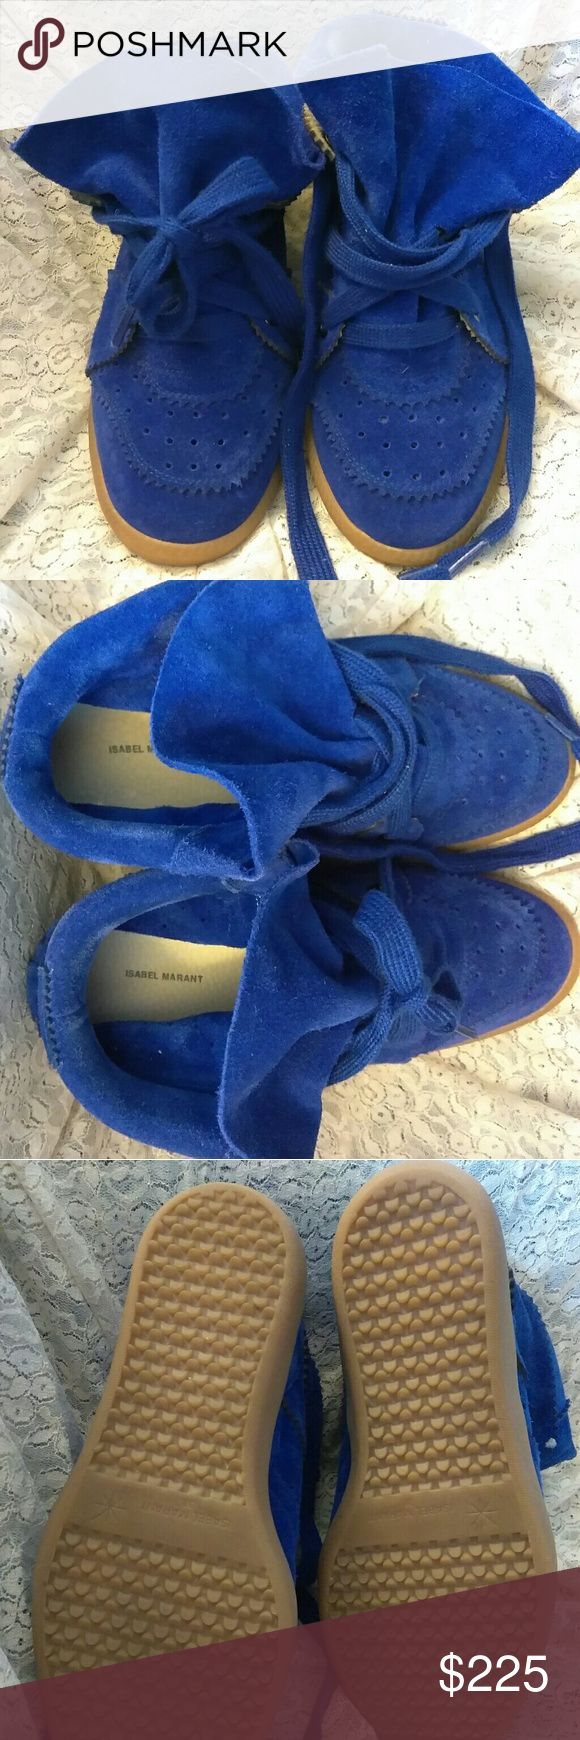 Isabel Marant Bobby hidden wedge sneakers EUC Beautiful cobalt color suede IM sneakers. Only wore a couple times EUC. Compared to what I paid for these I do not wear them enough. They need more love!   They are a 38 but I wear a 7.5 in sneakers. Sizing is a bit different as listed in Euro sizes on here. Isabel Marant Shoes Sneakers